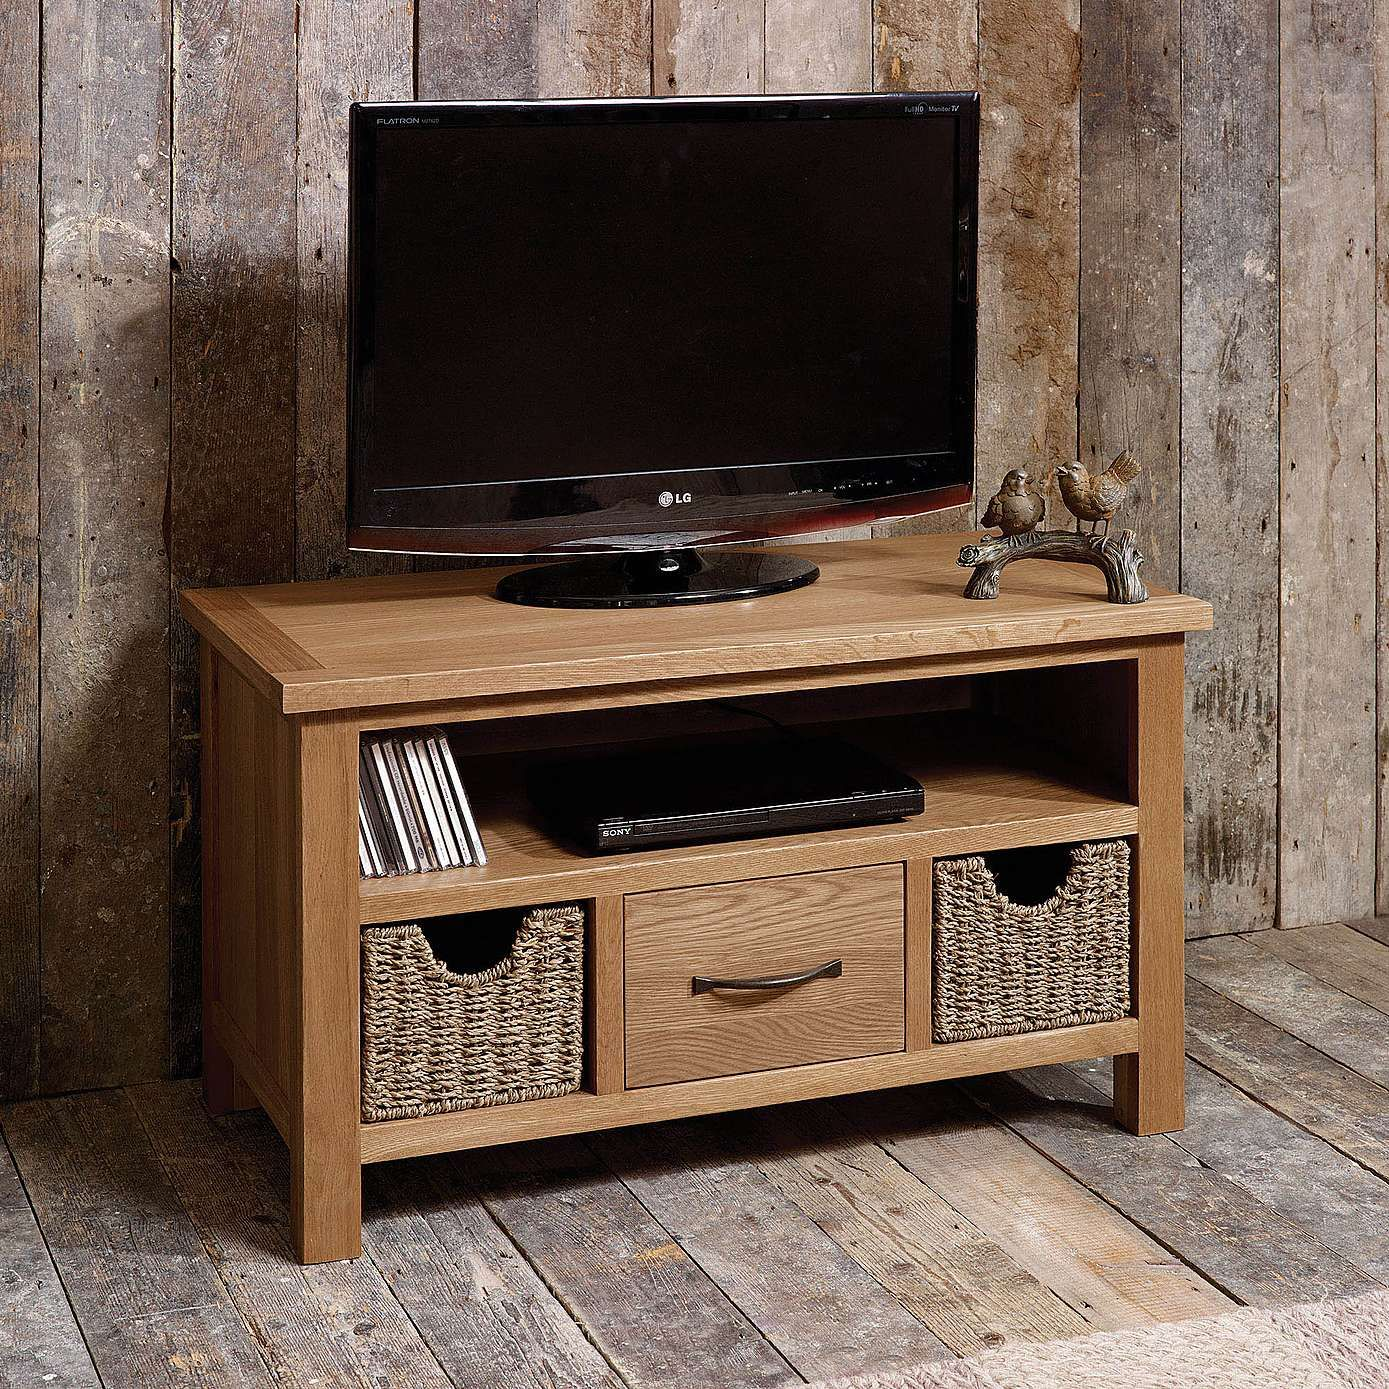 crafted with a light oak veneer this small fully assembled tv stand provides ample storage space including a shelf for electronic equipment